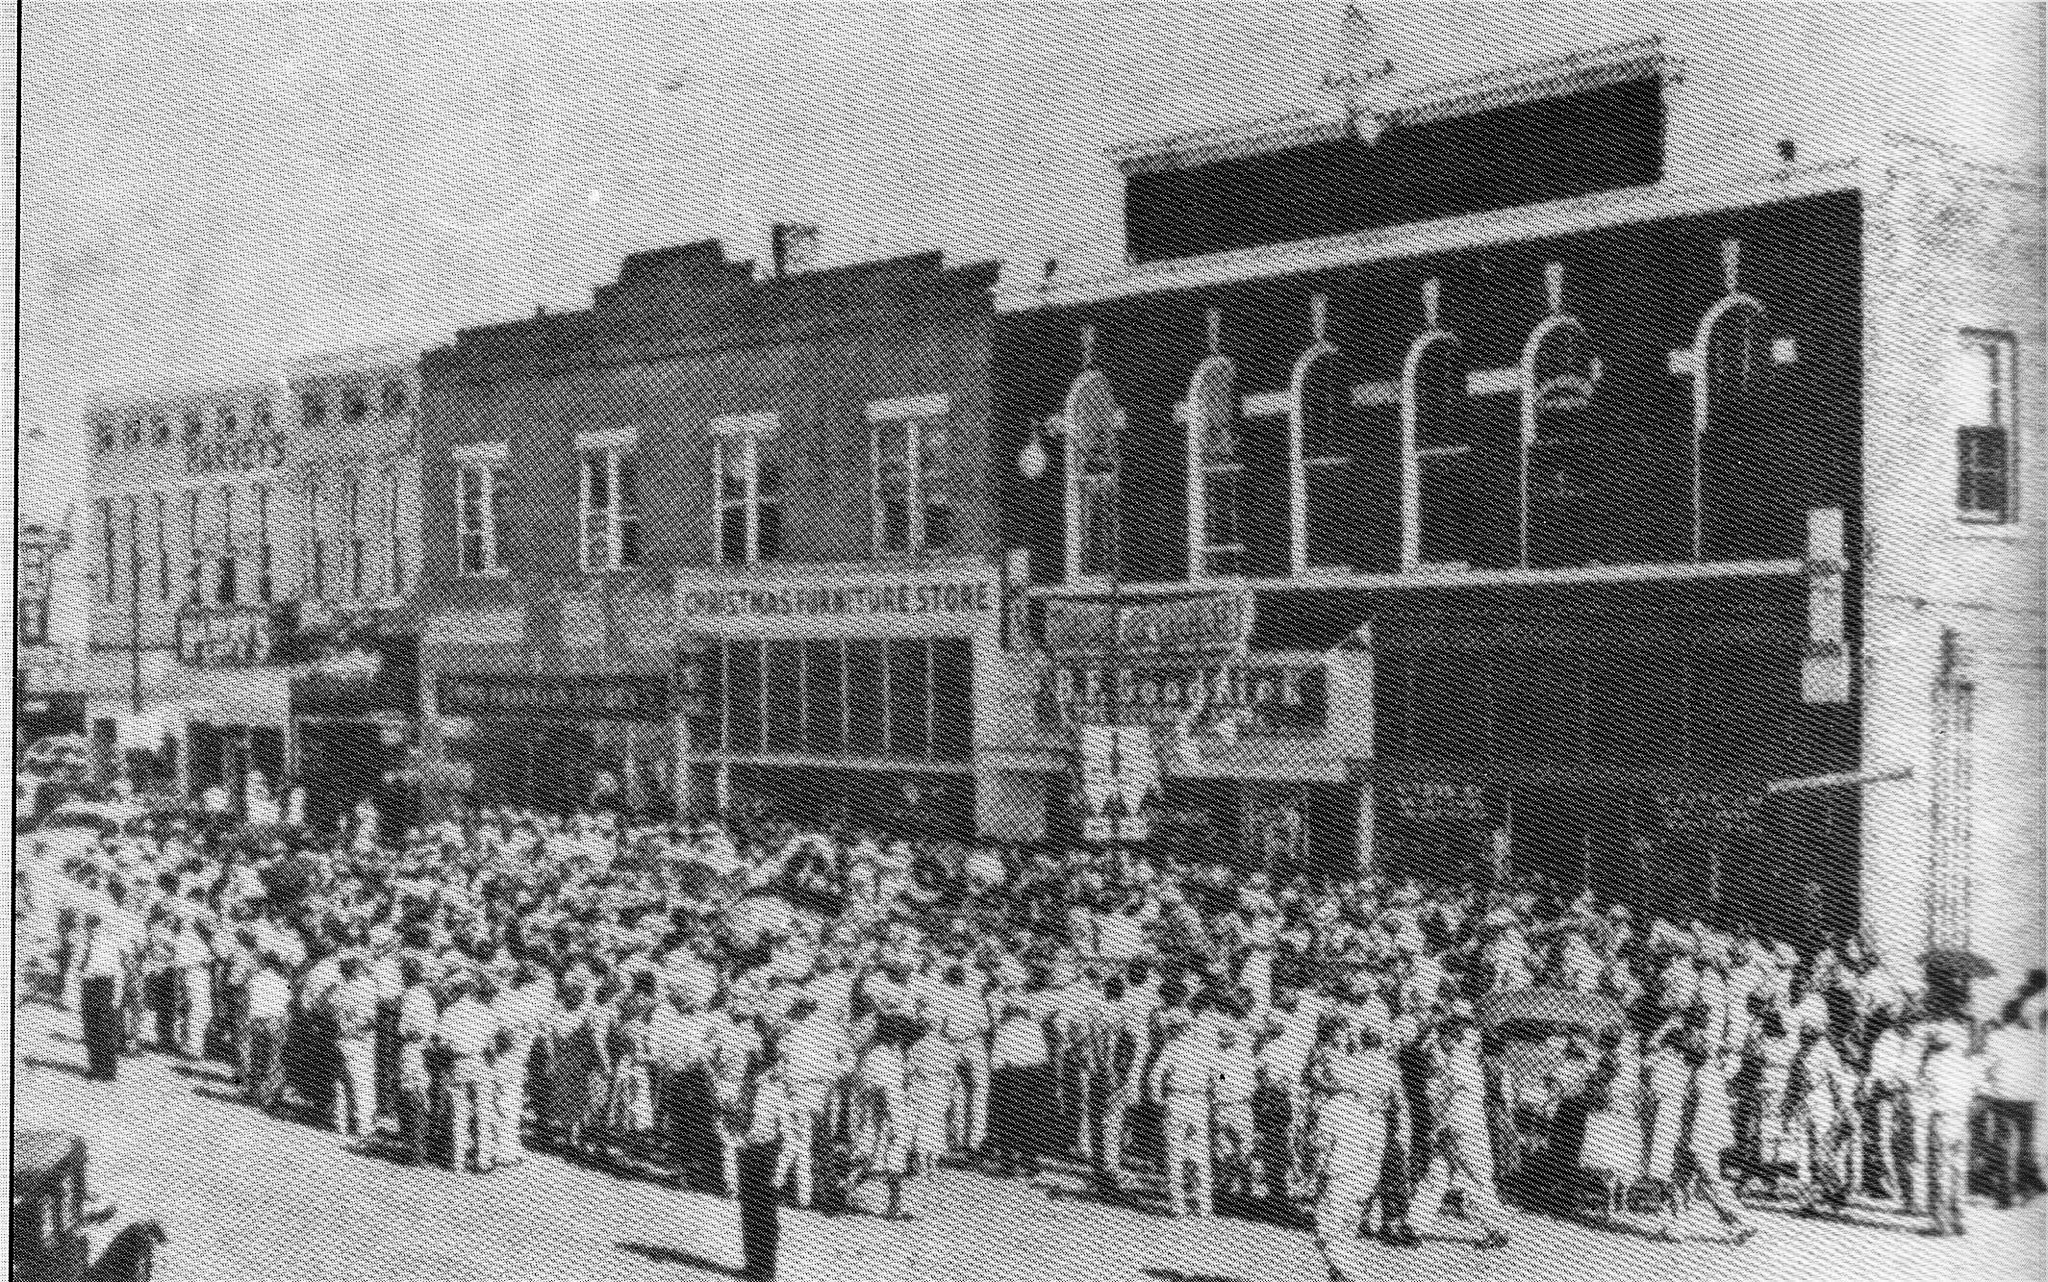 Brownsville TN - Economy Store Opening 1955